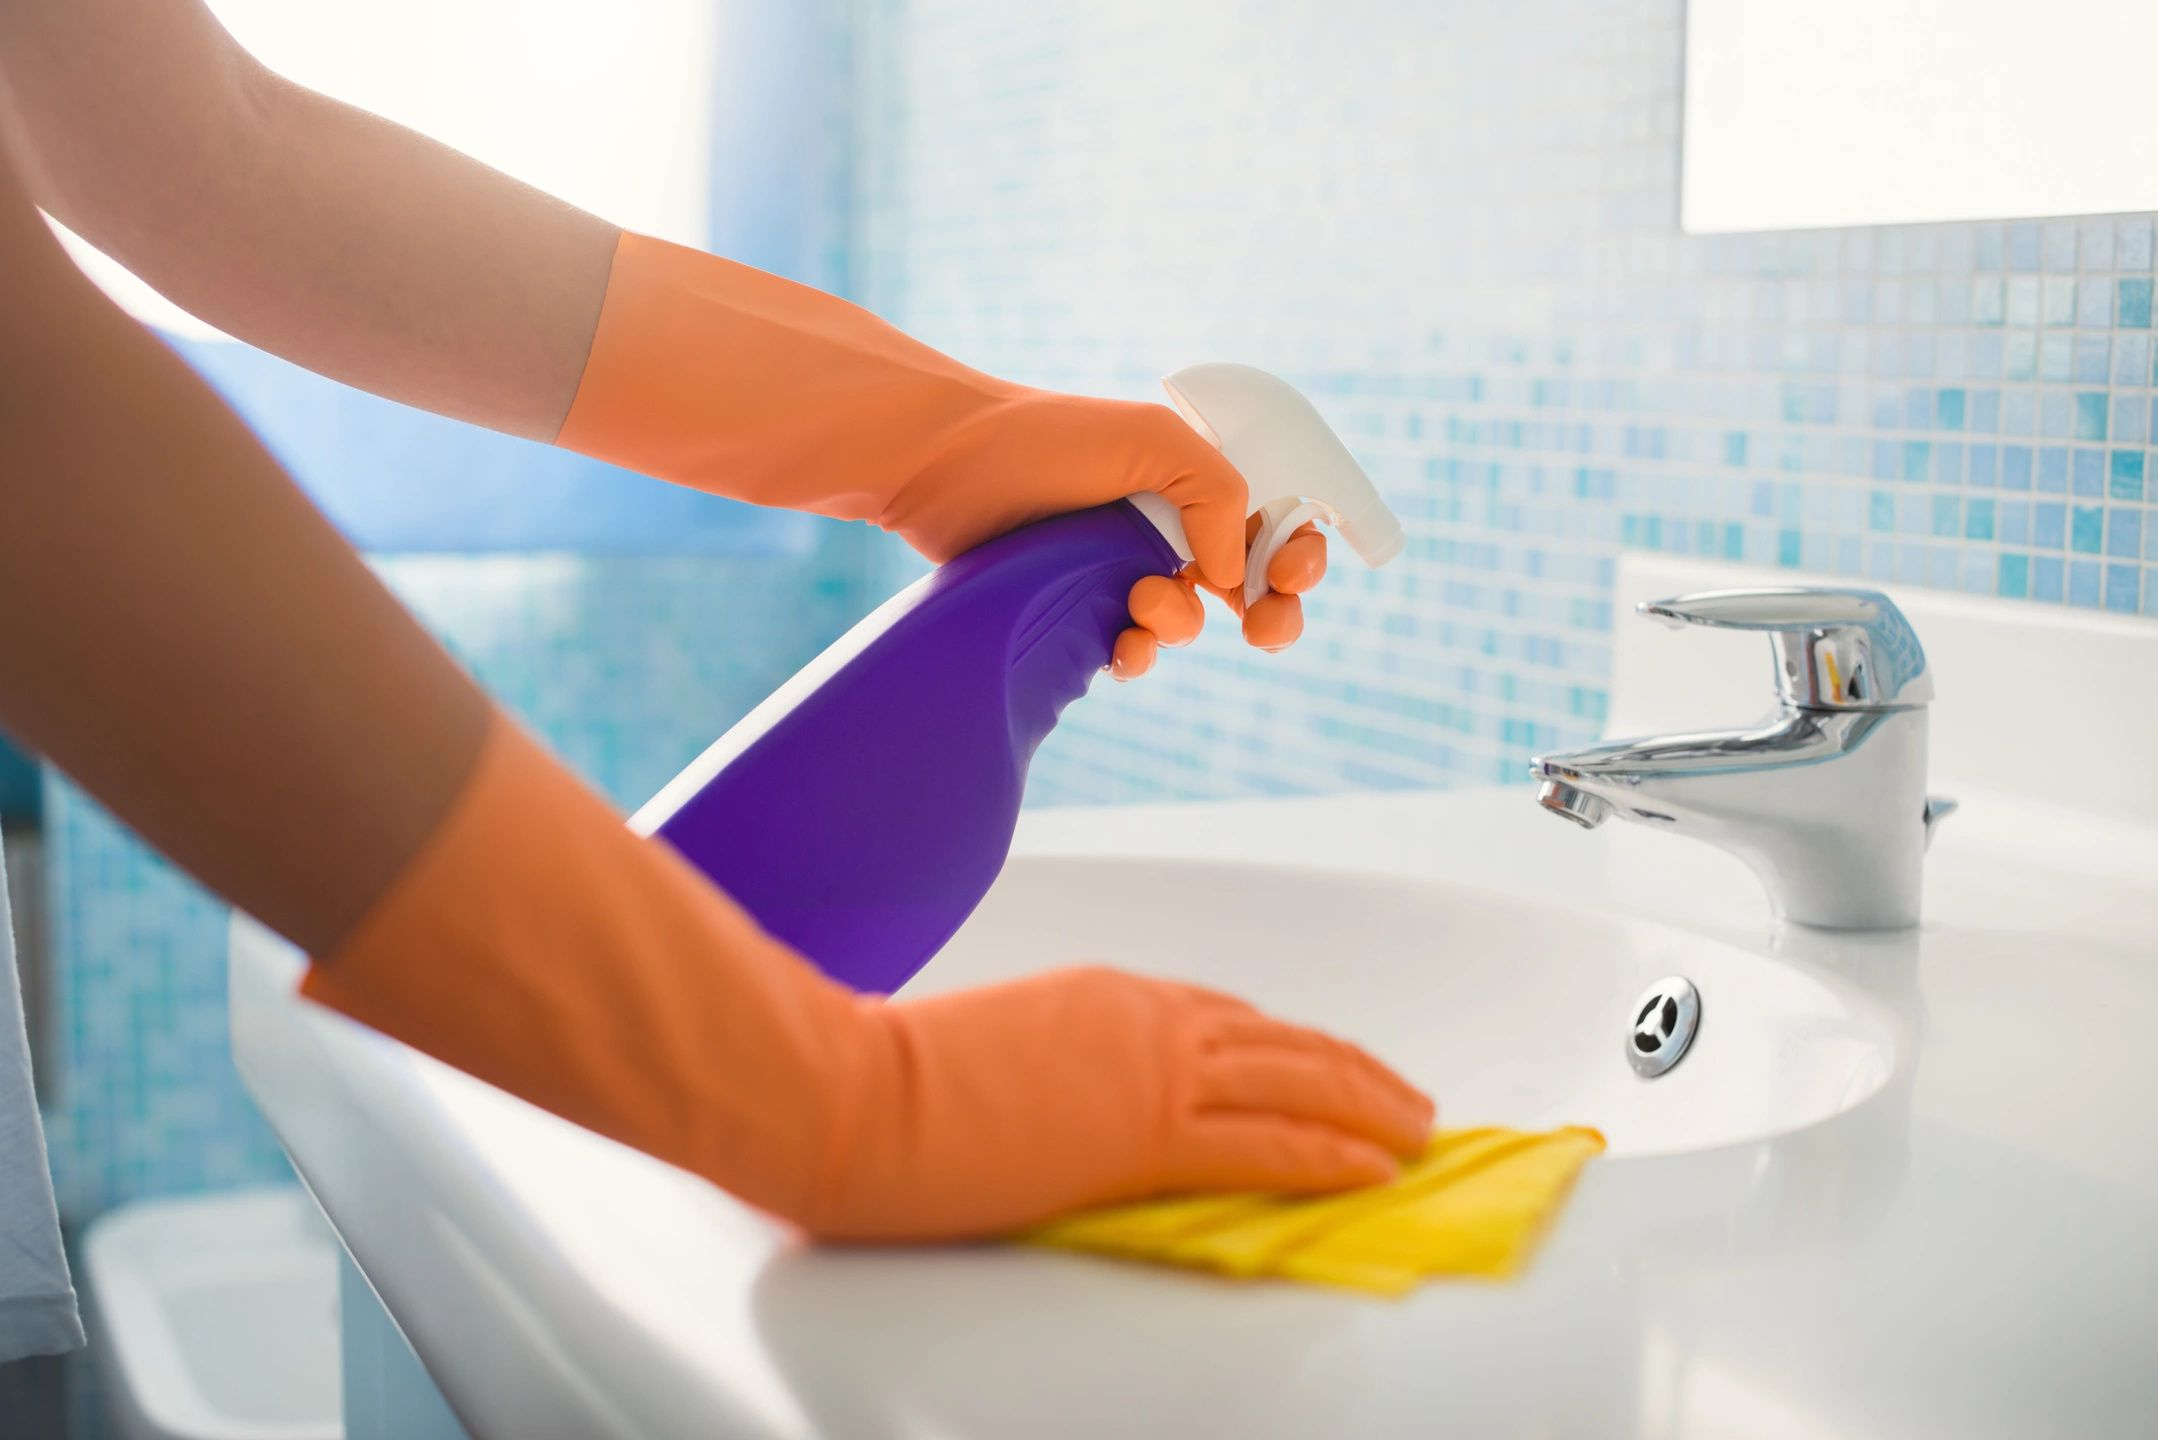 Person wearing rubber gloves cleans a sink with a spray bottle and a cloth